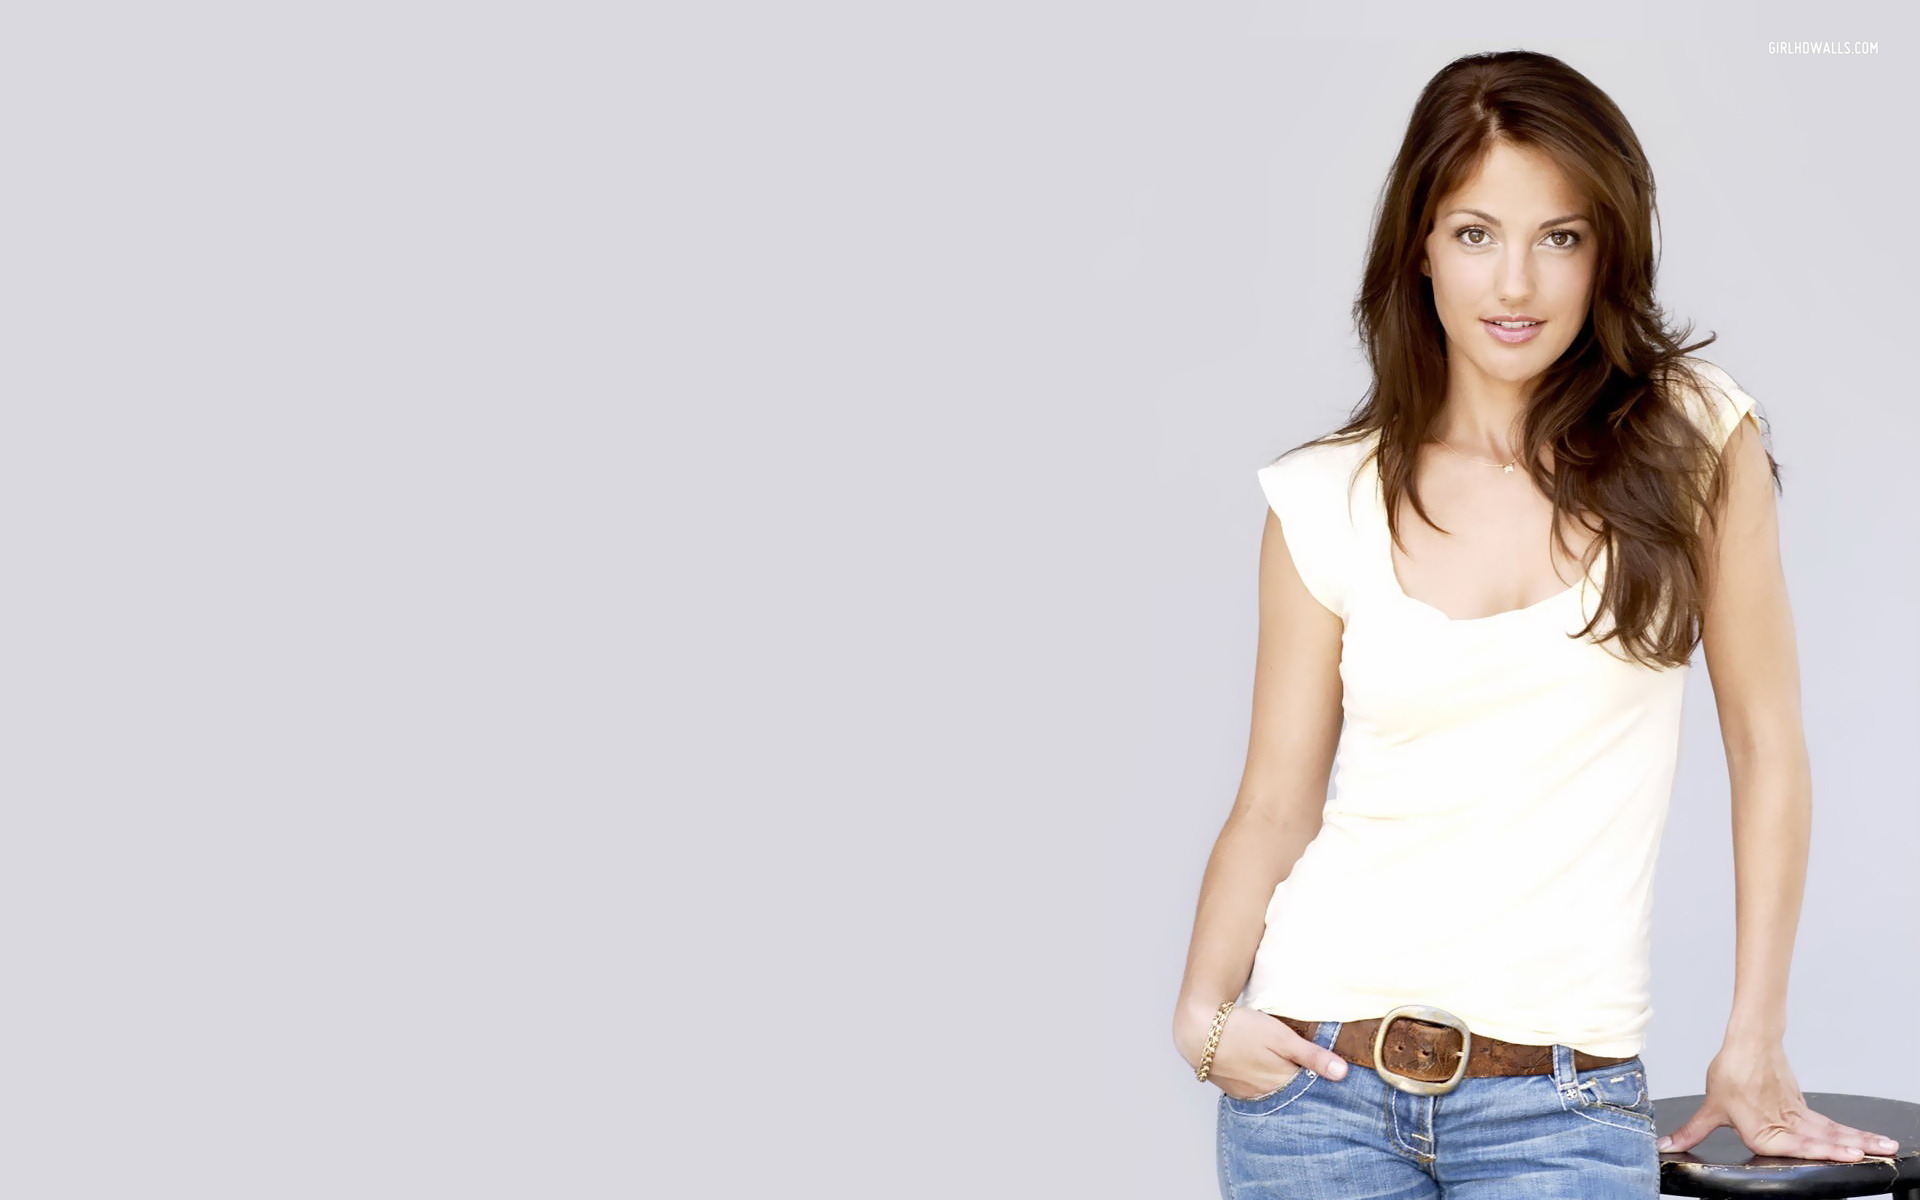 Minka Kelly download free wallpapers